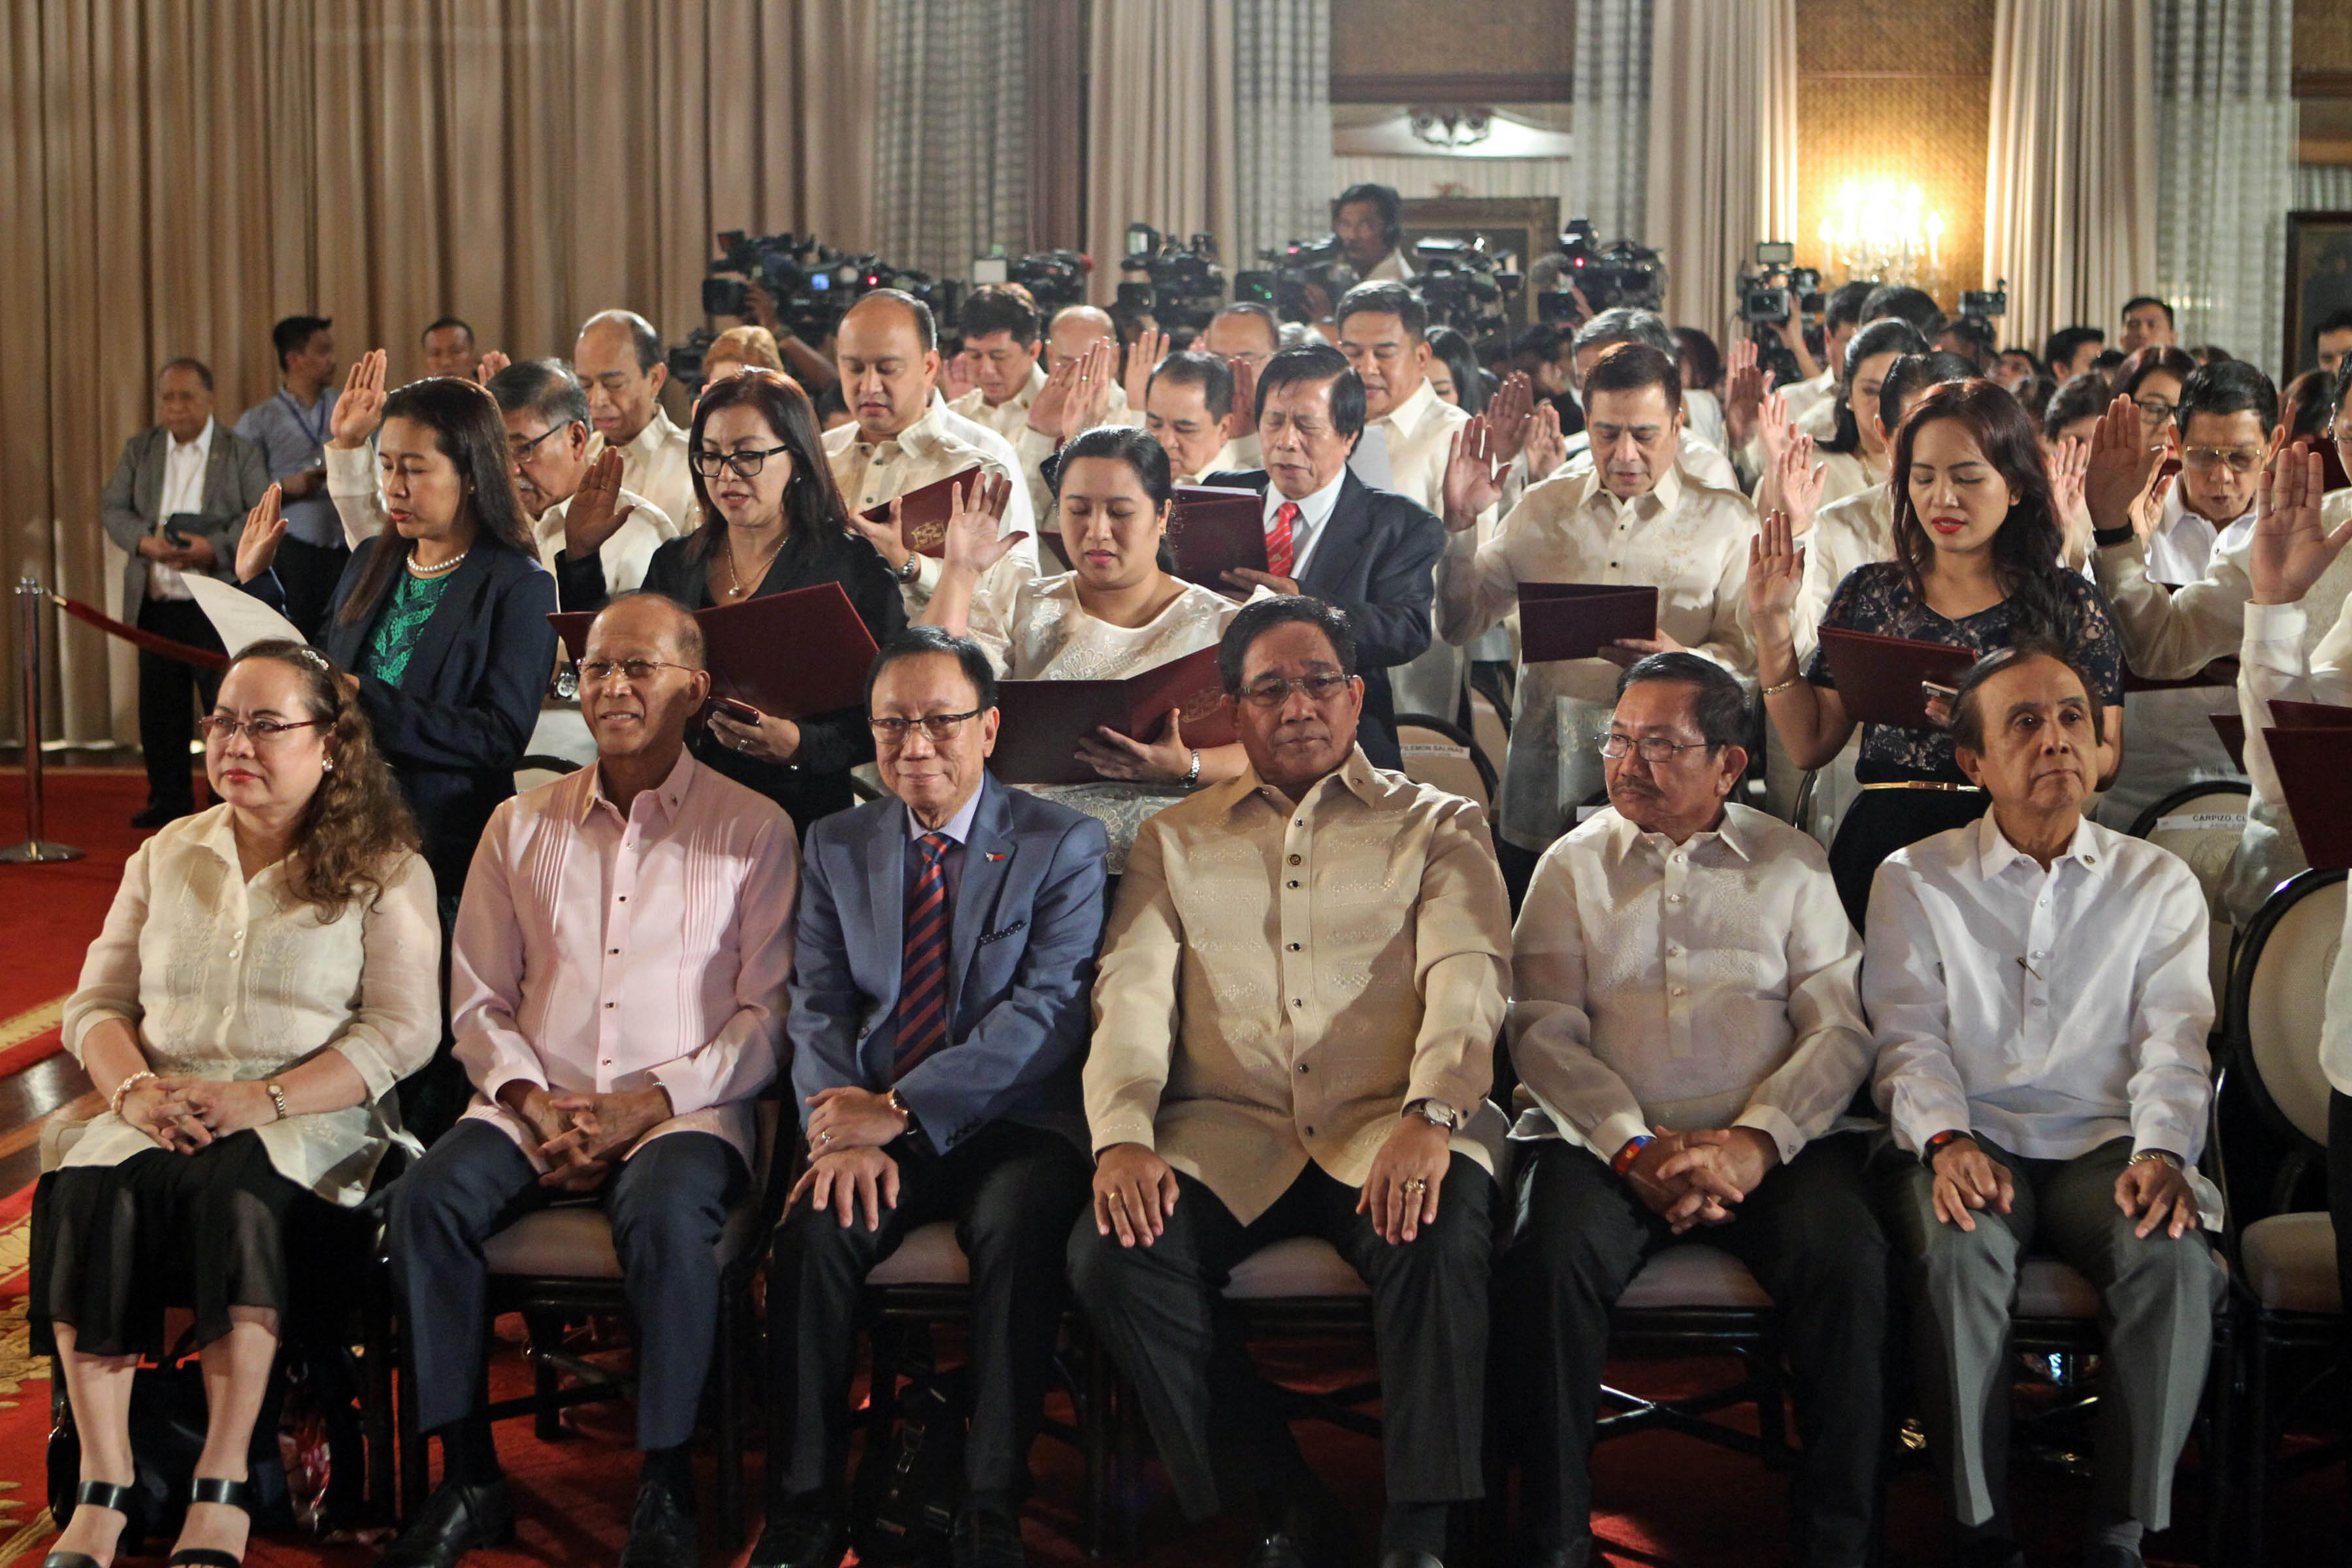 OATH-TAKING. Members of the Duterte Cabinet are seated in the front row as new government appointees are sworn in on January 9, 2017. Photo by Robinson Niu00f1al/Presidential Photo